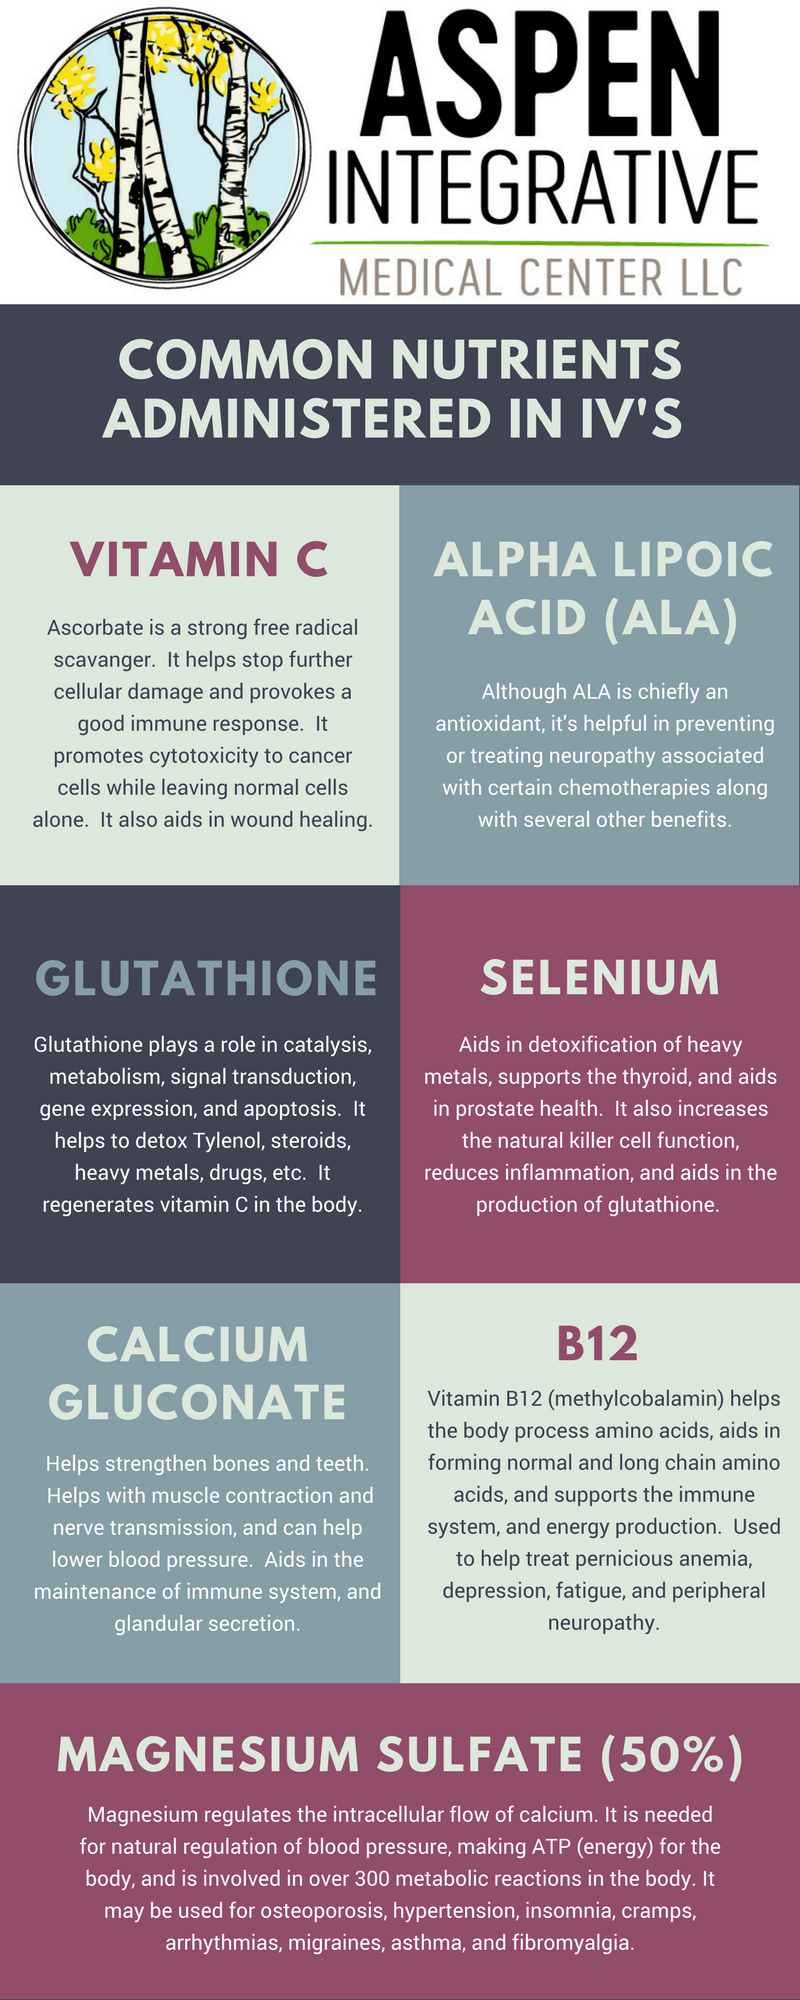 Common Nutrients Administered IN iv'S.png